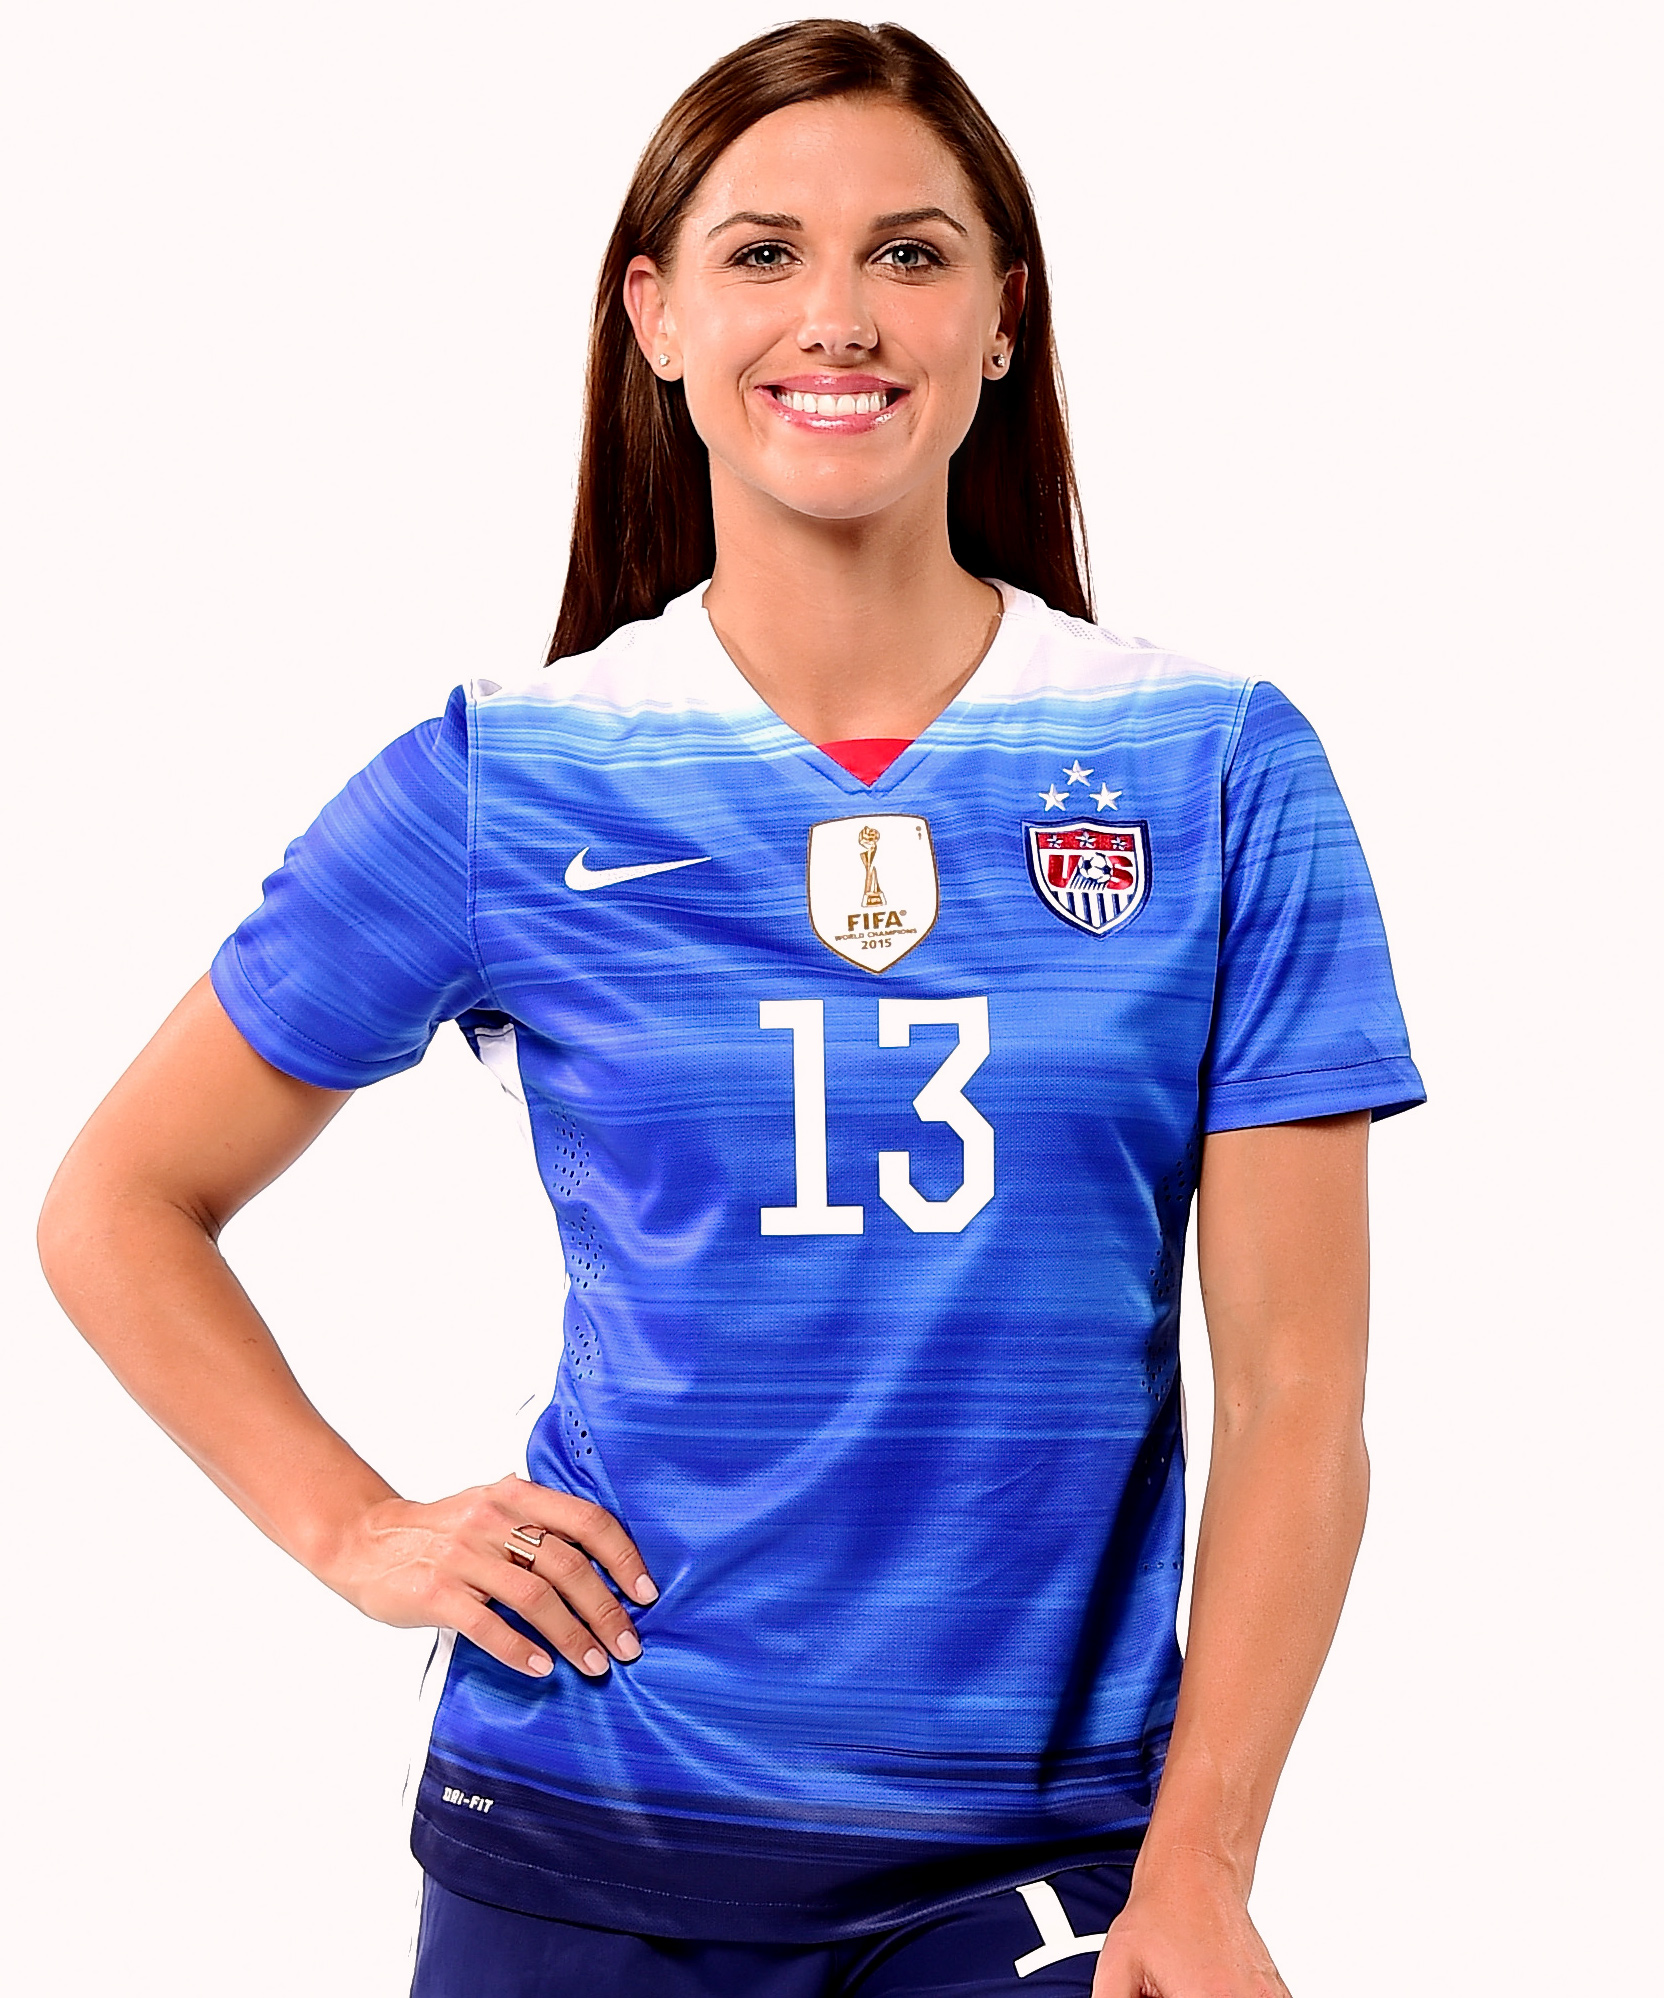 8 Reasons Alex Morgan Is a Role Model of Olympic Proportions